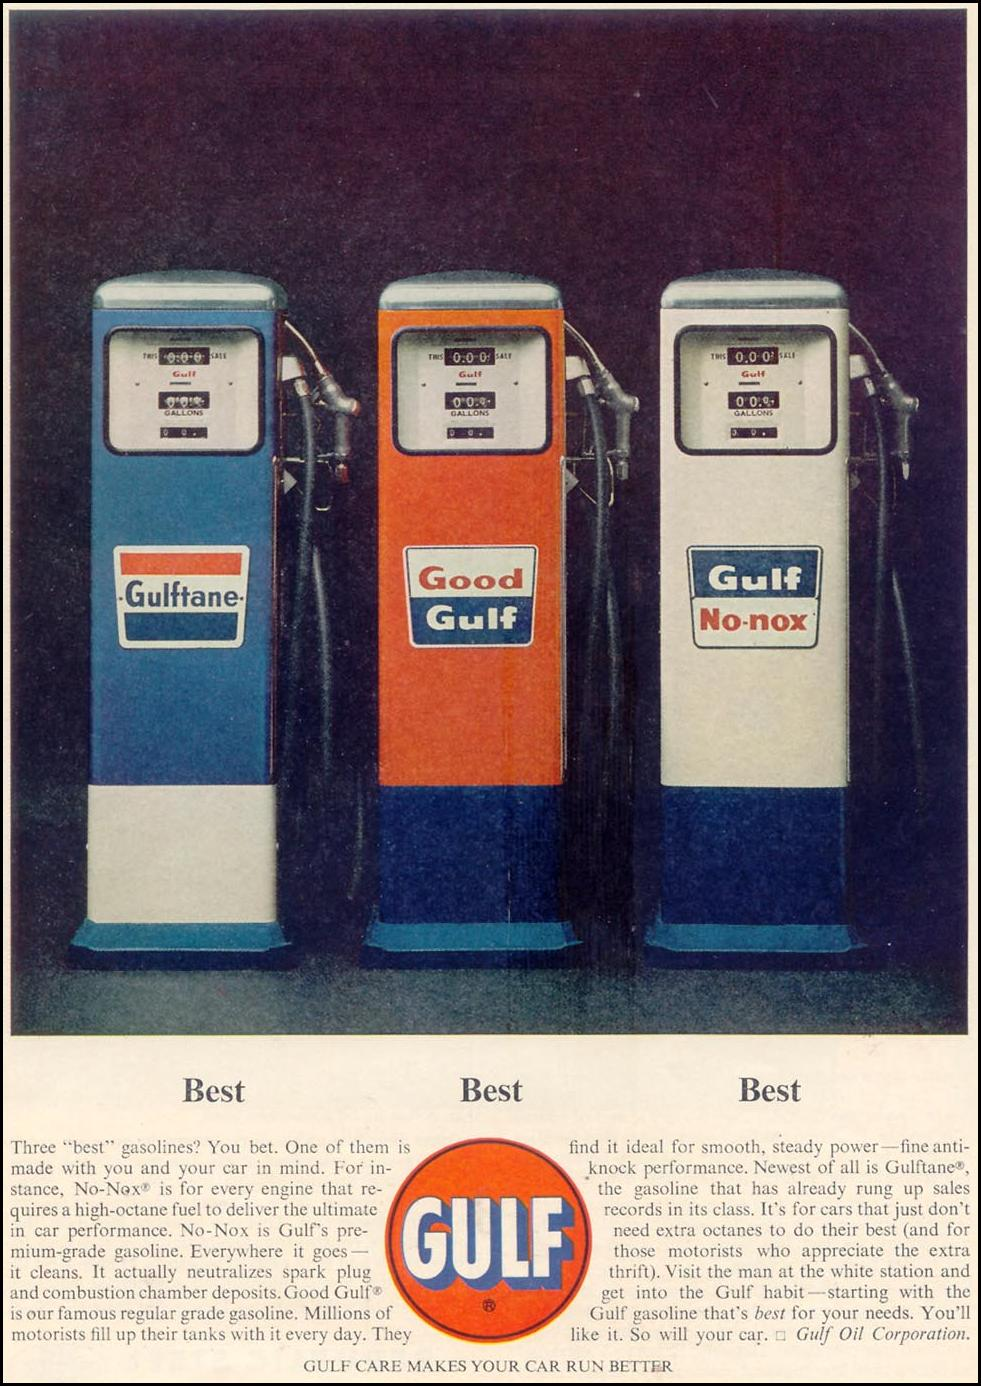 GULF NO-NOX GASOLINE TIME 05/03/1963